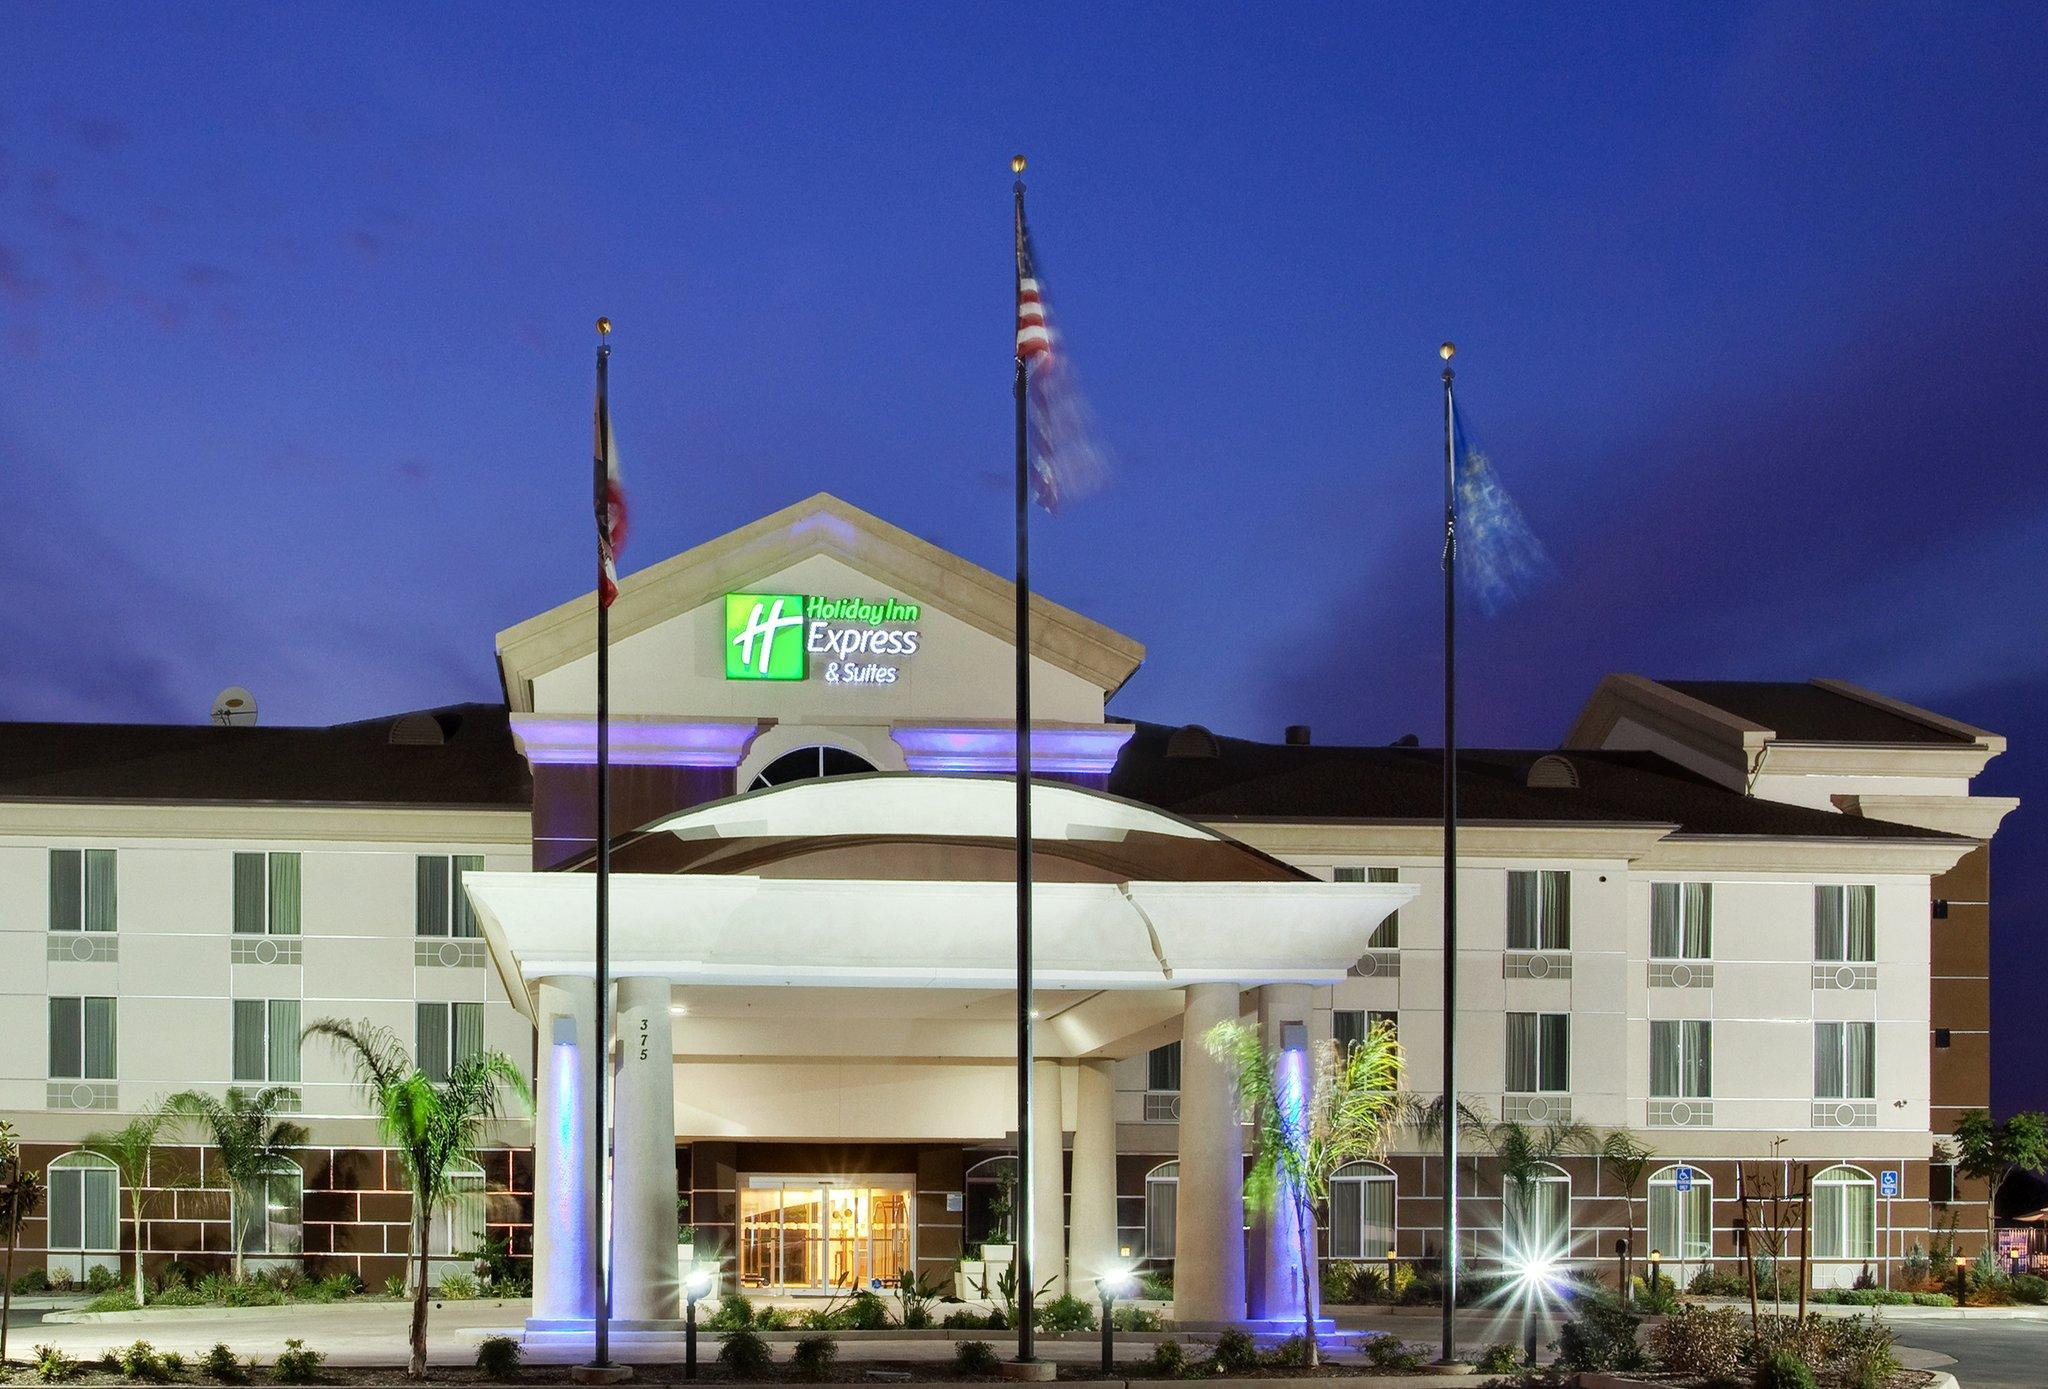 Holiday Inn Express Hotel And Suites Dinuba West